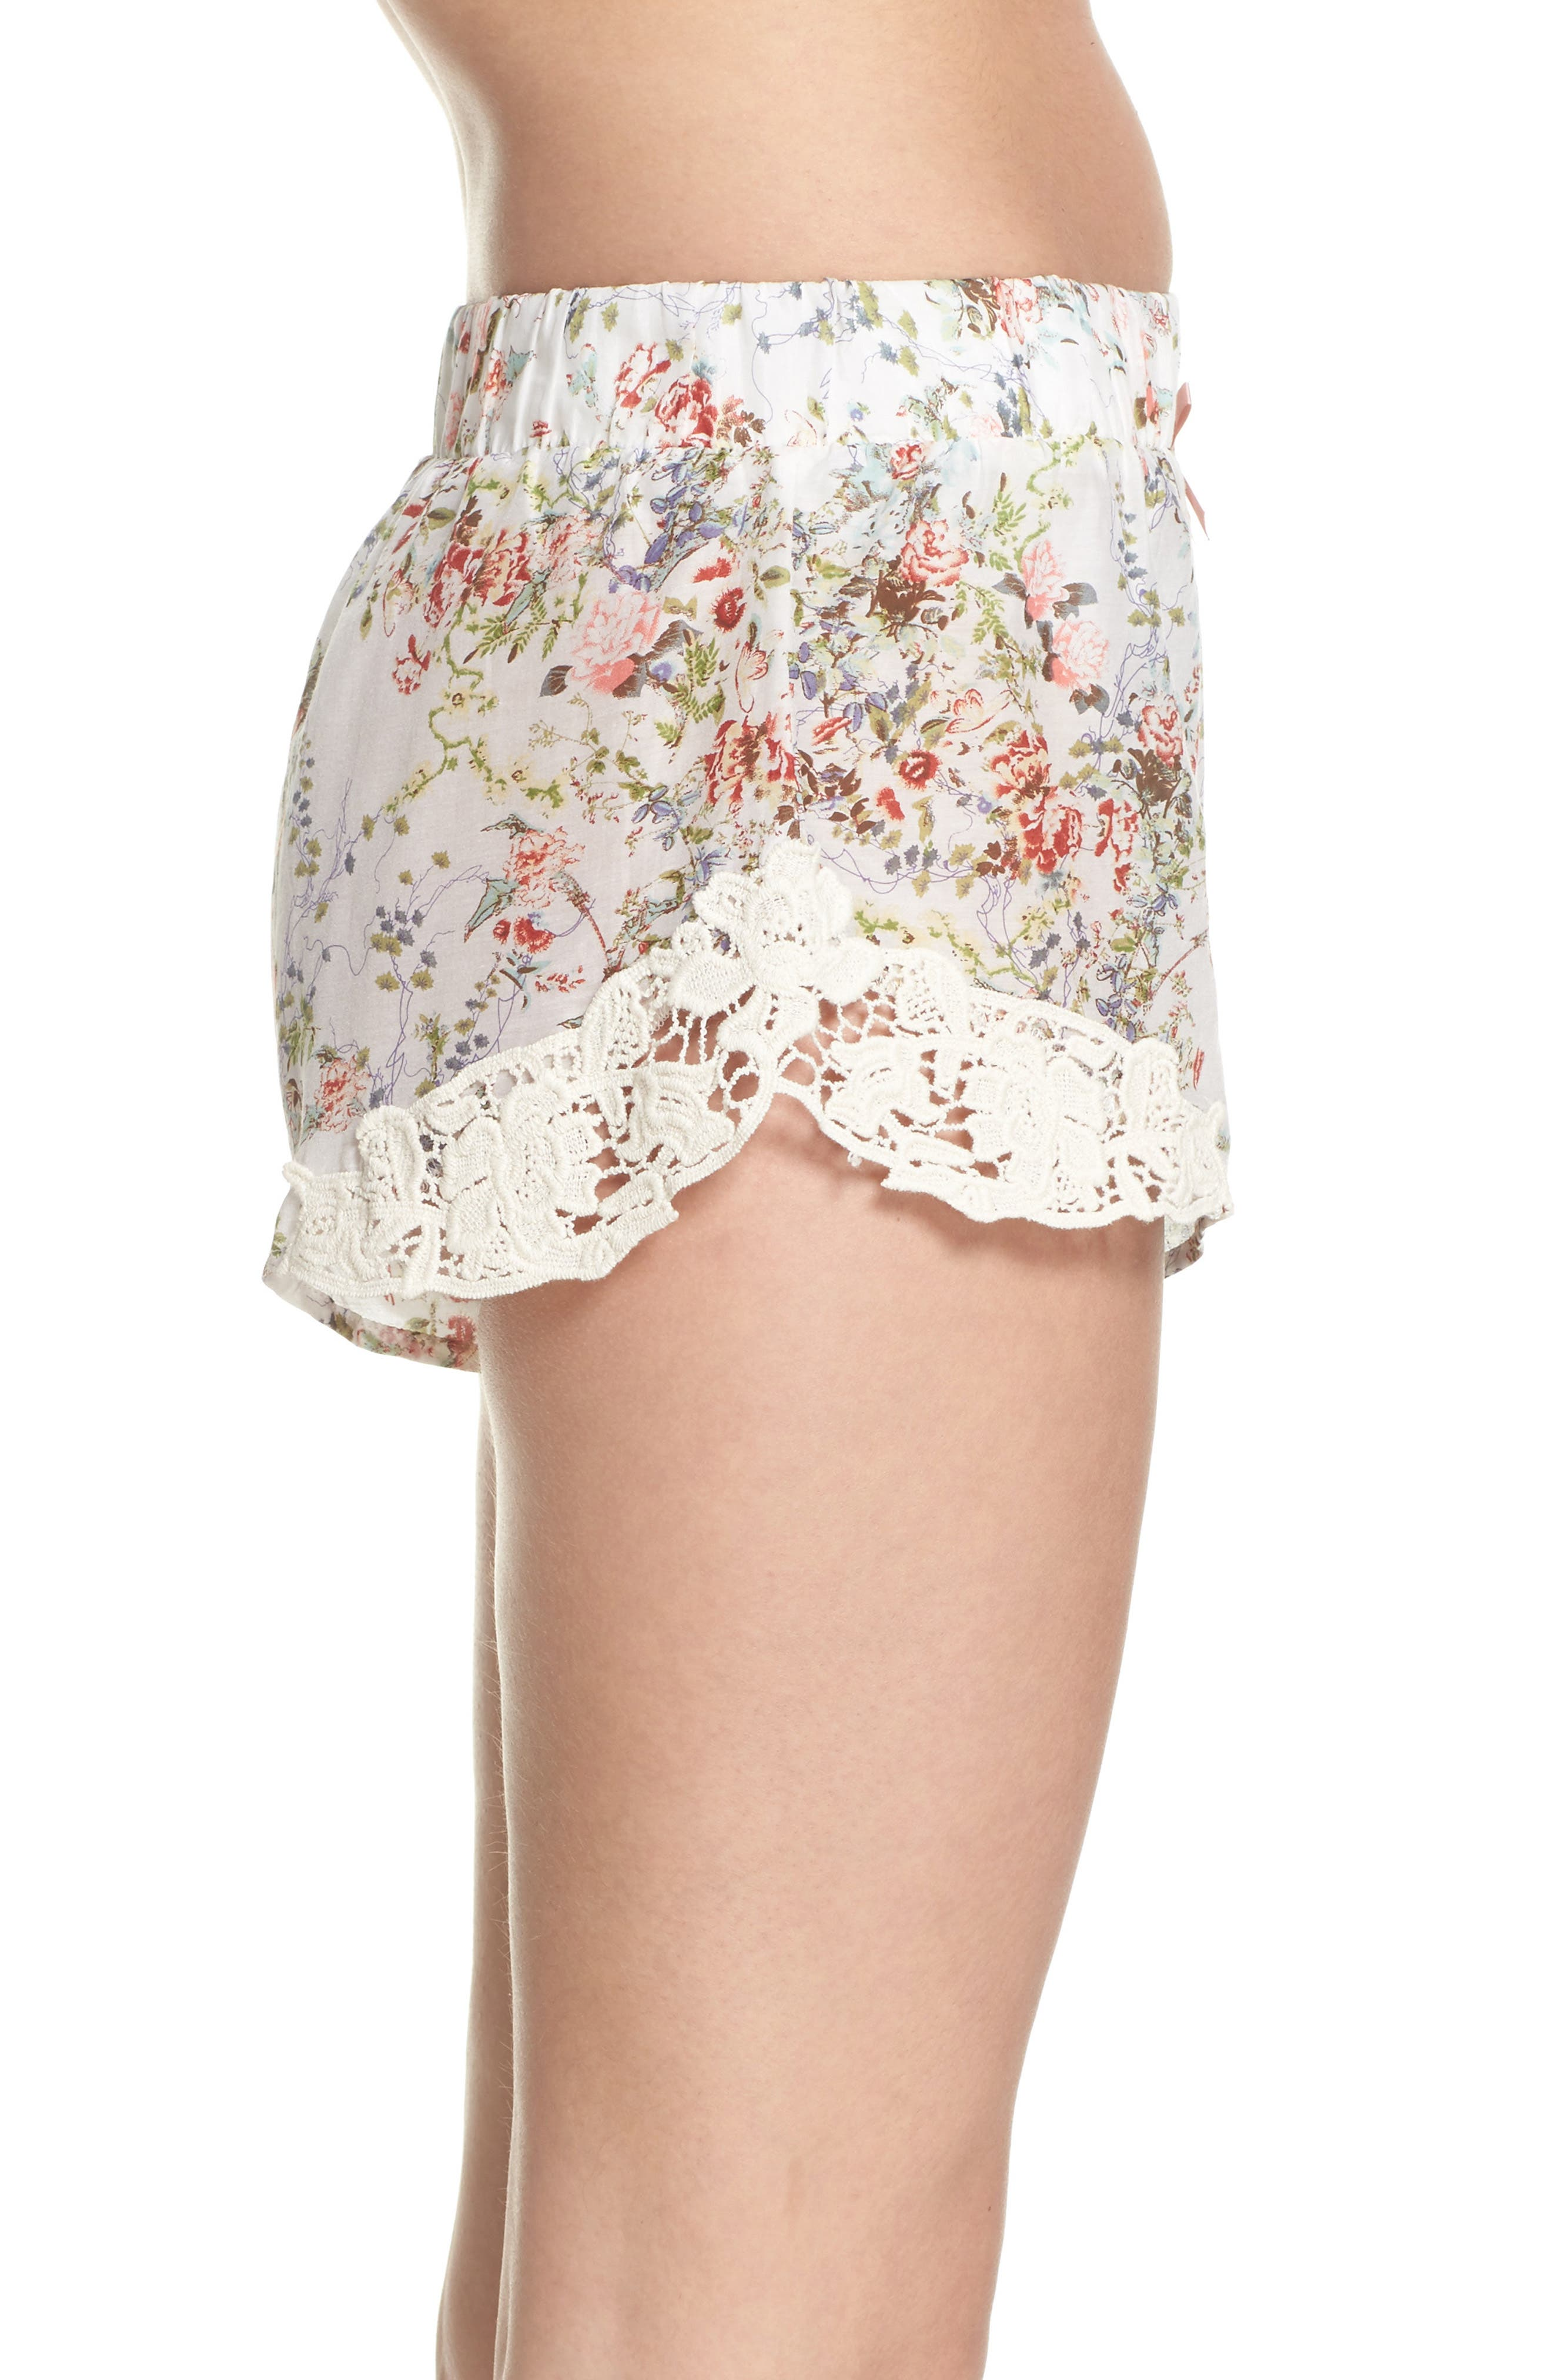 Yolly Floral Pajama Shorts,                             Alternate thumbnail 3, color,                             Ivory Floral